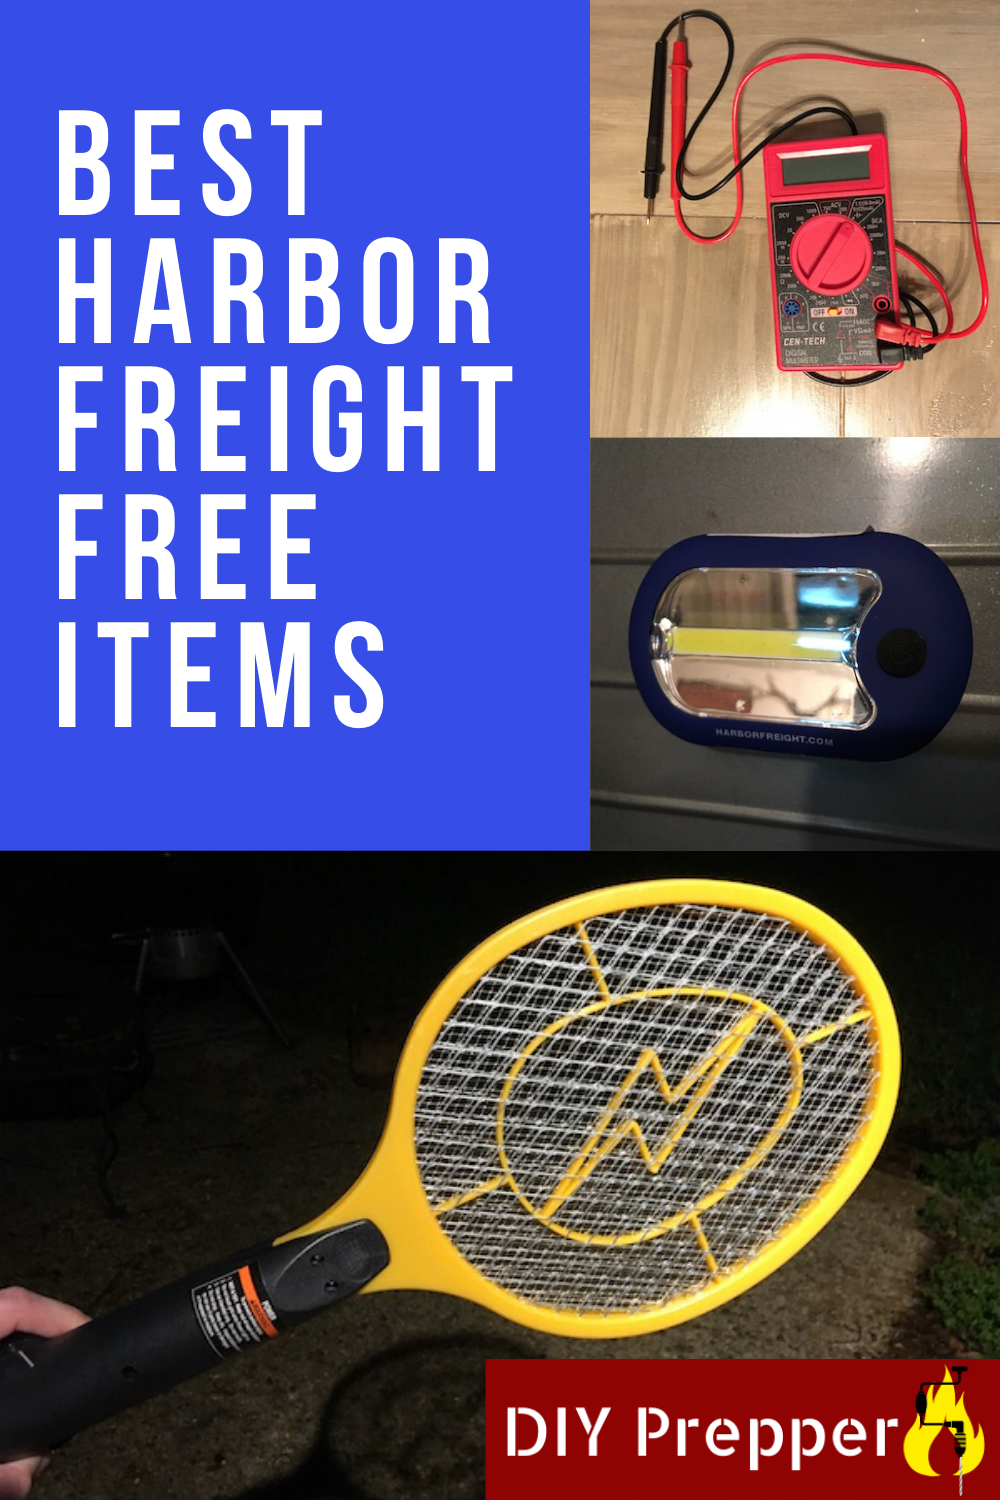 Best Harbor Freight Free Items DIY Prepper in 2020